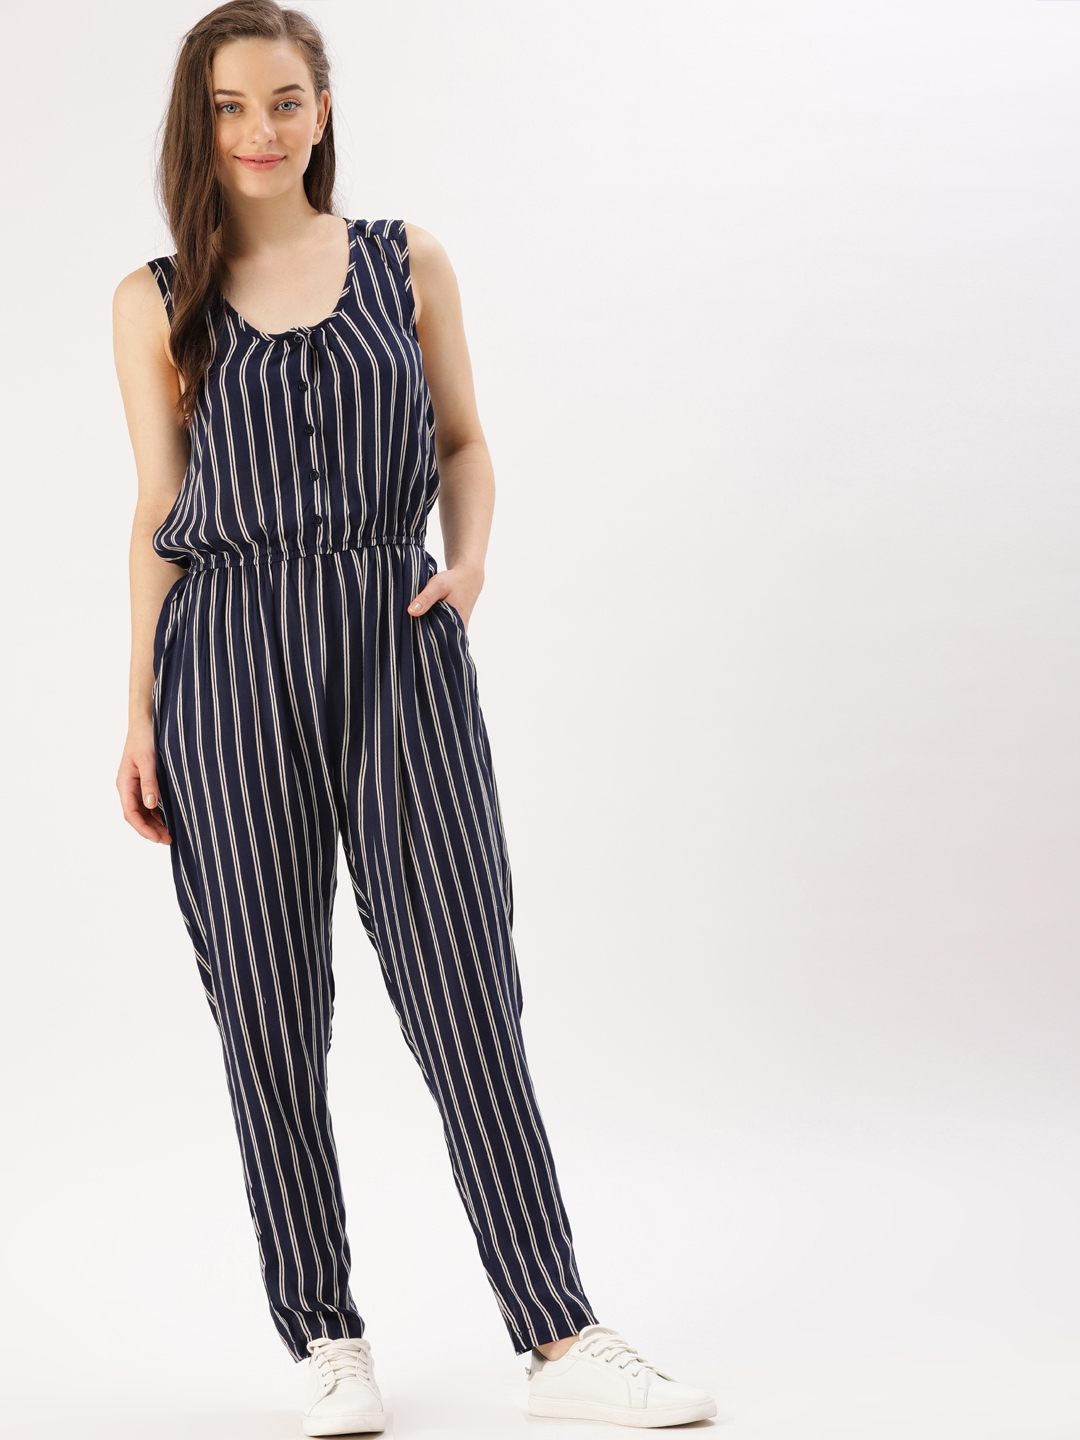 Buy Dressberry Navy Blue Off White Striped Basic Jumpsuit